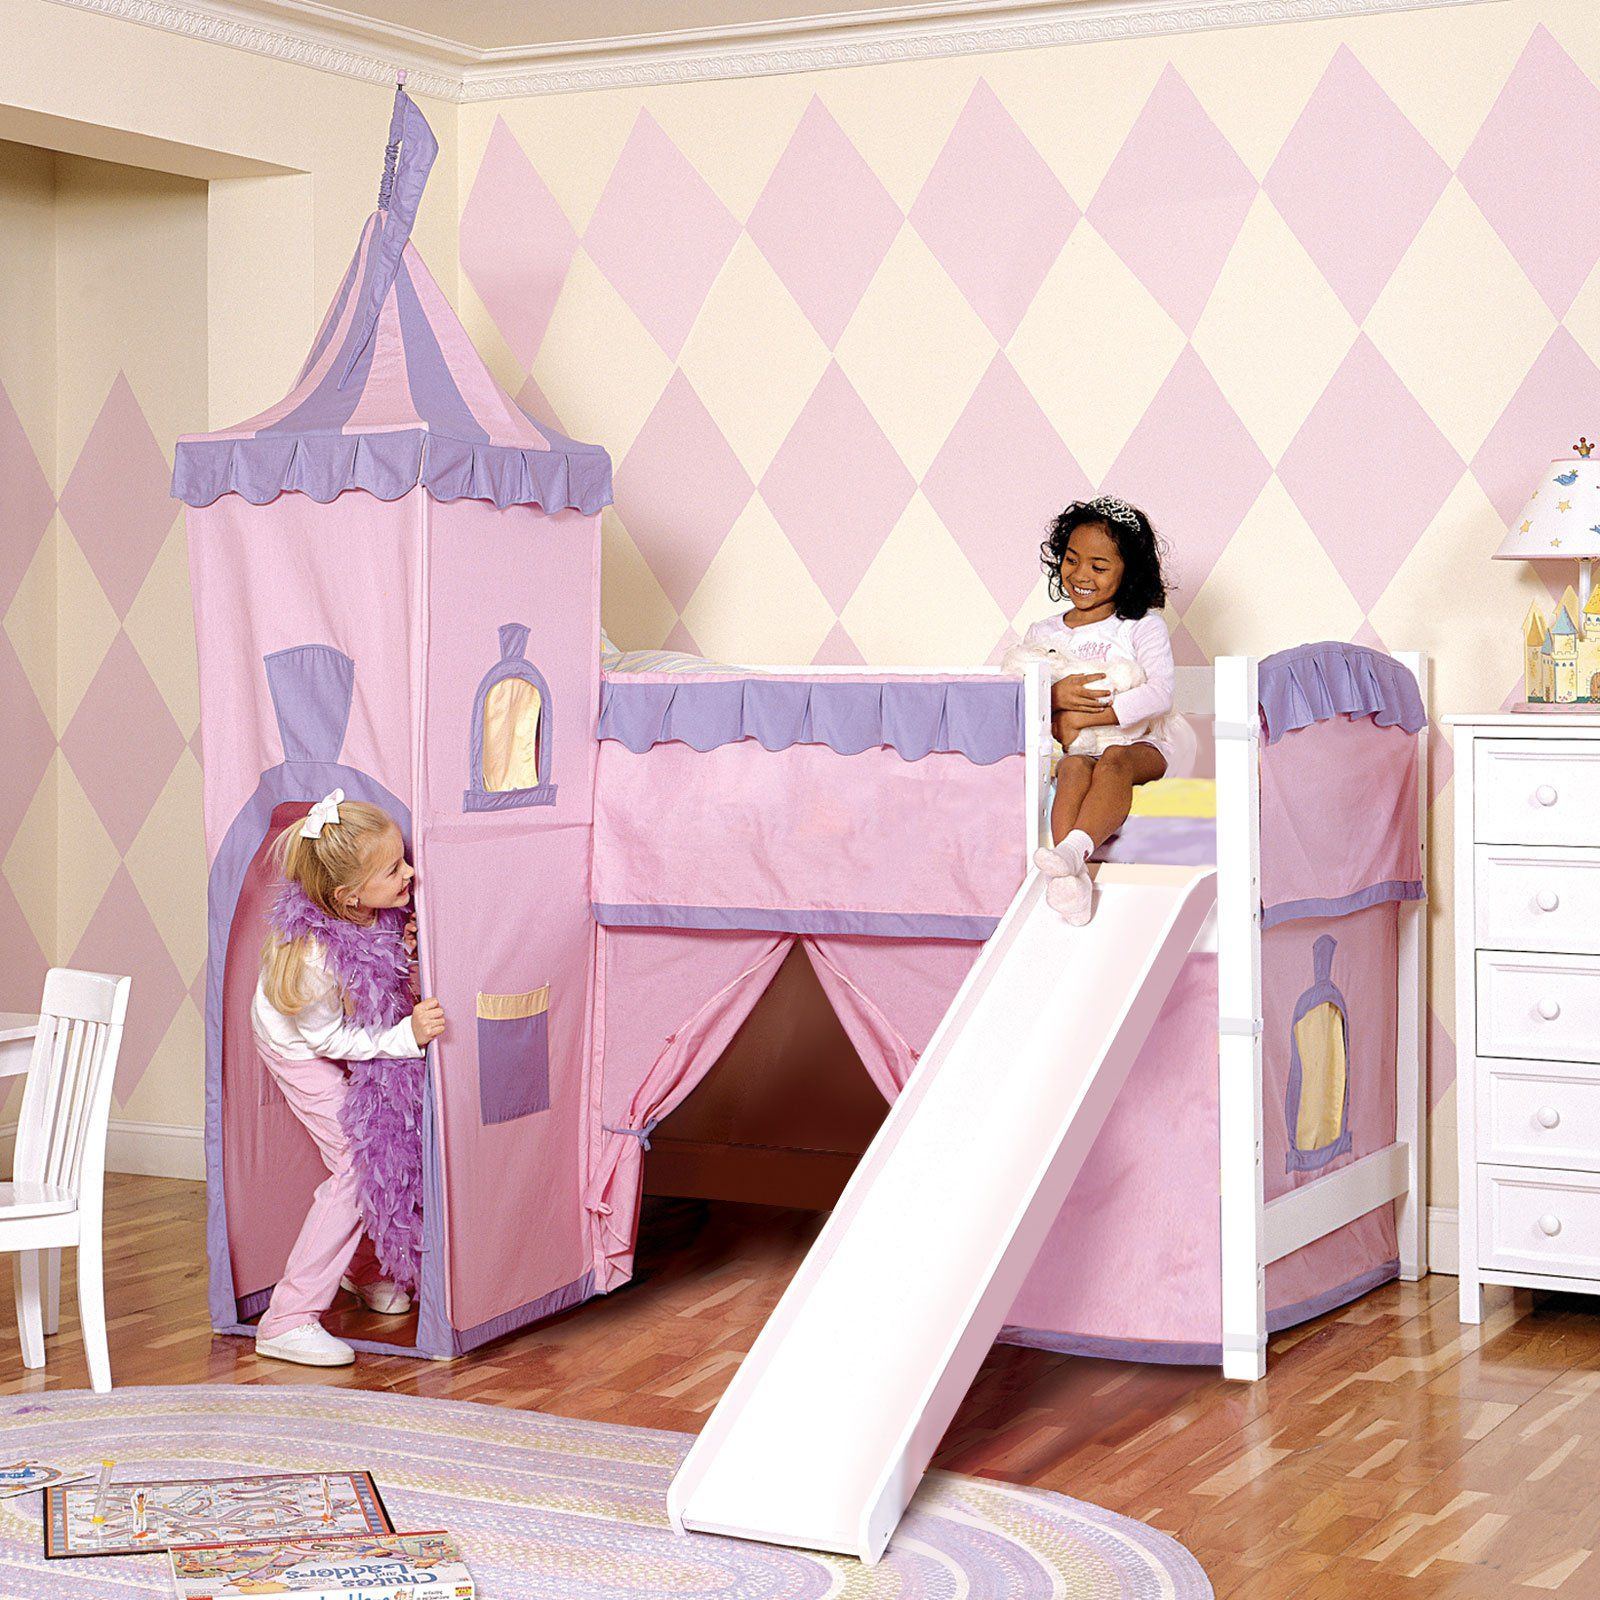 Cool bunk beds with slides - Princess Junior Twin Loft Tent Bed With Slide